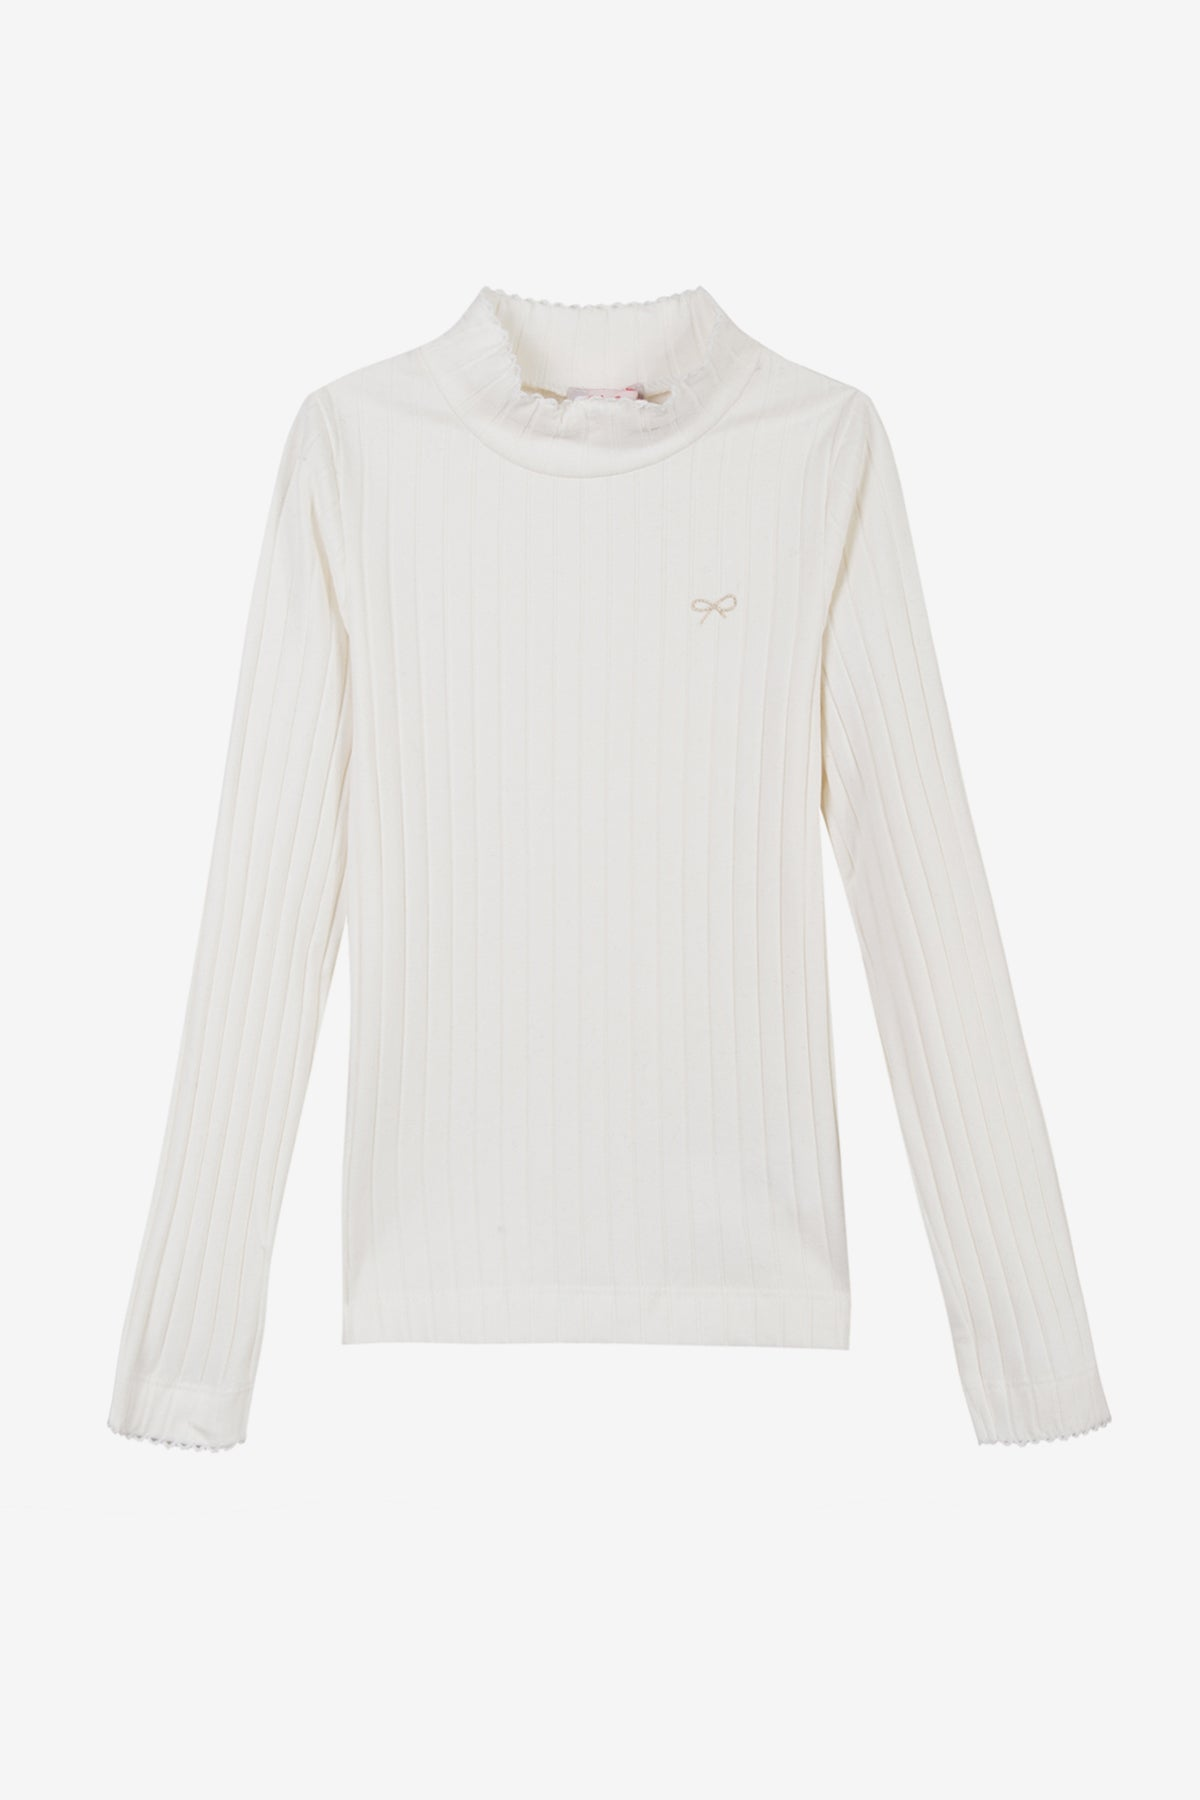 Lili Gaufrette Turtleneck - Cream